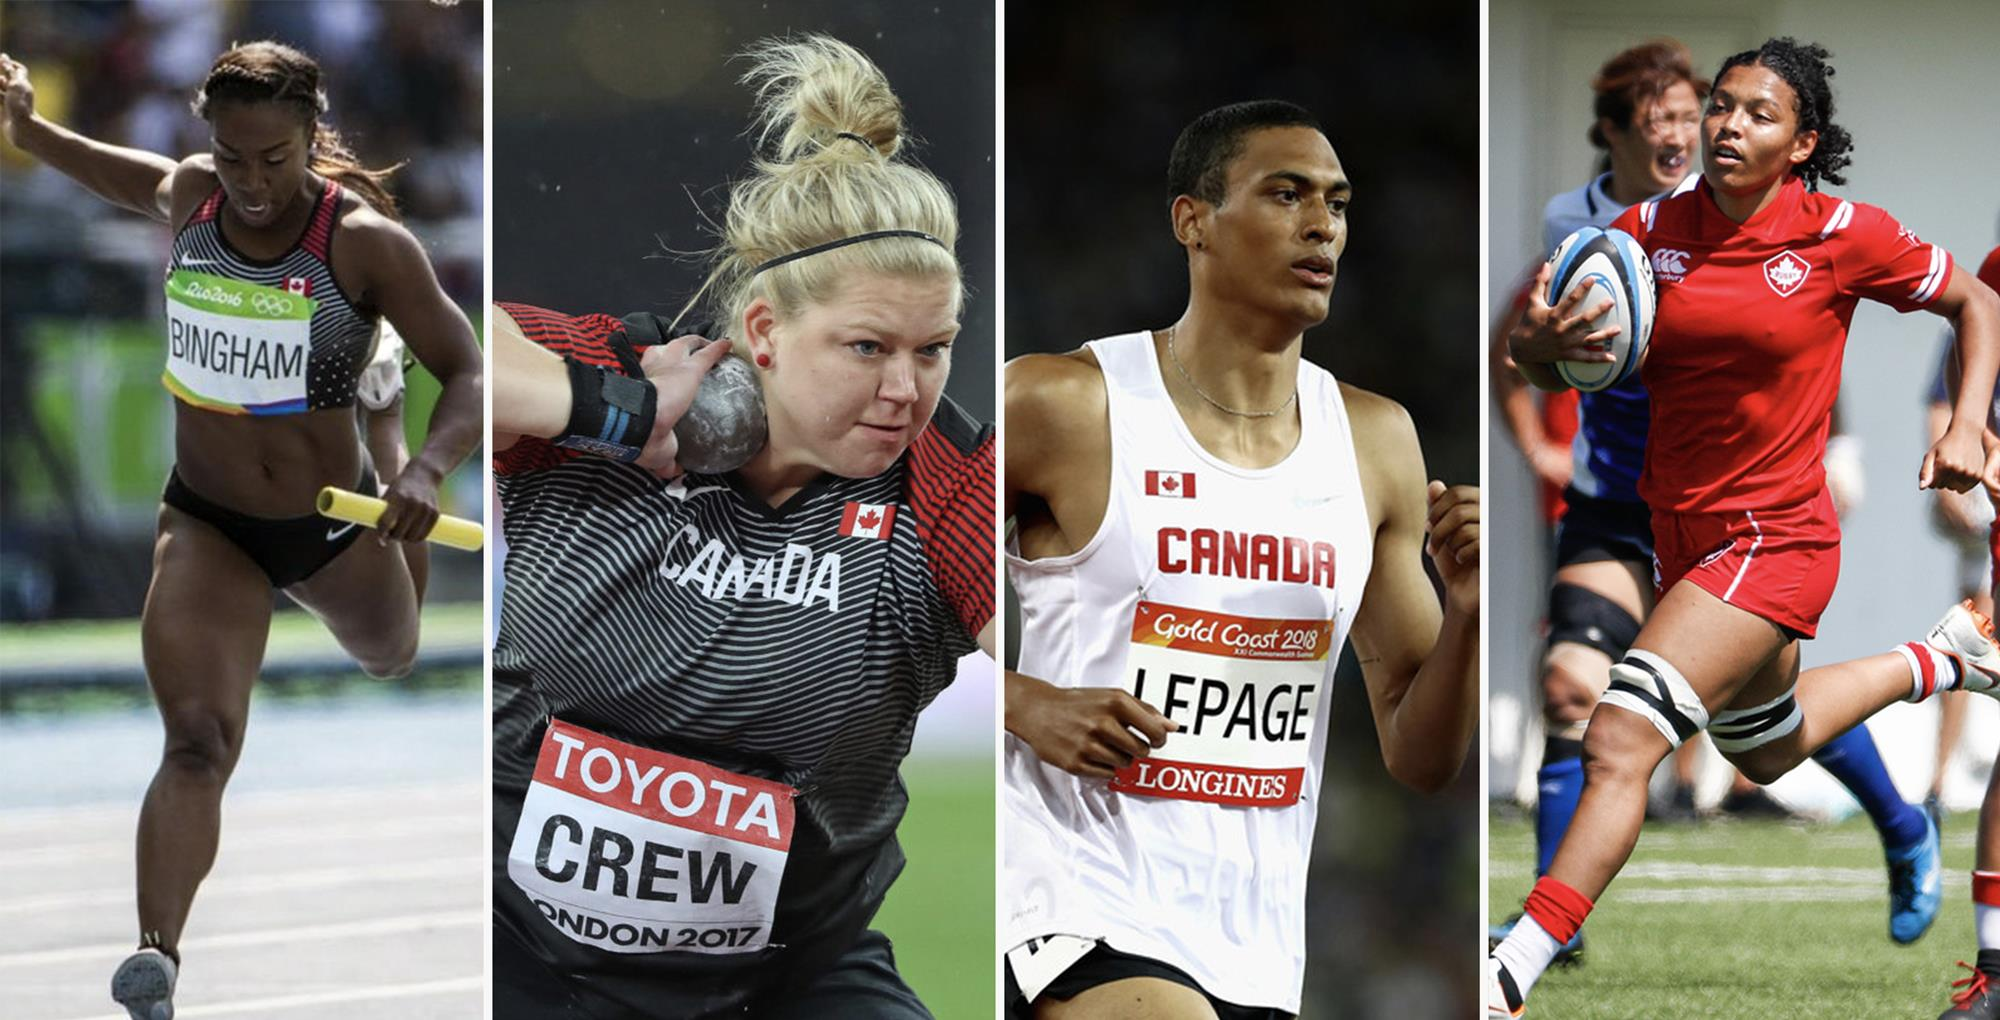 LIONS ATHLETES SET TO BATTLE AMERICAS AT 2019 PAN AM GAMES